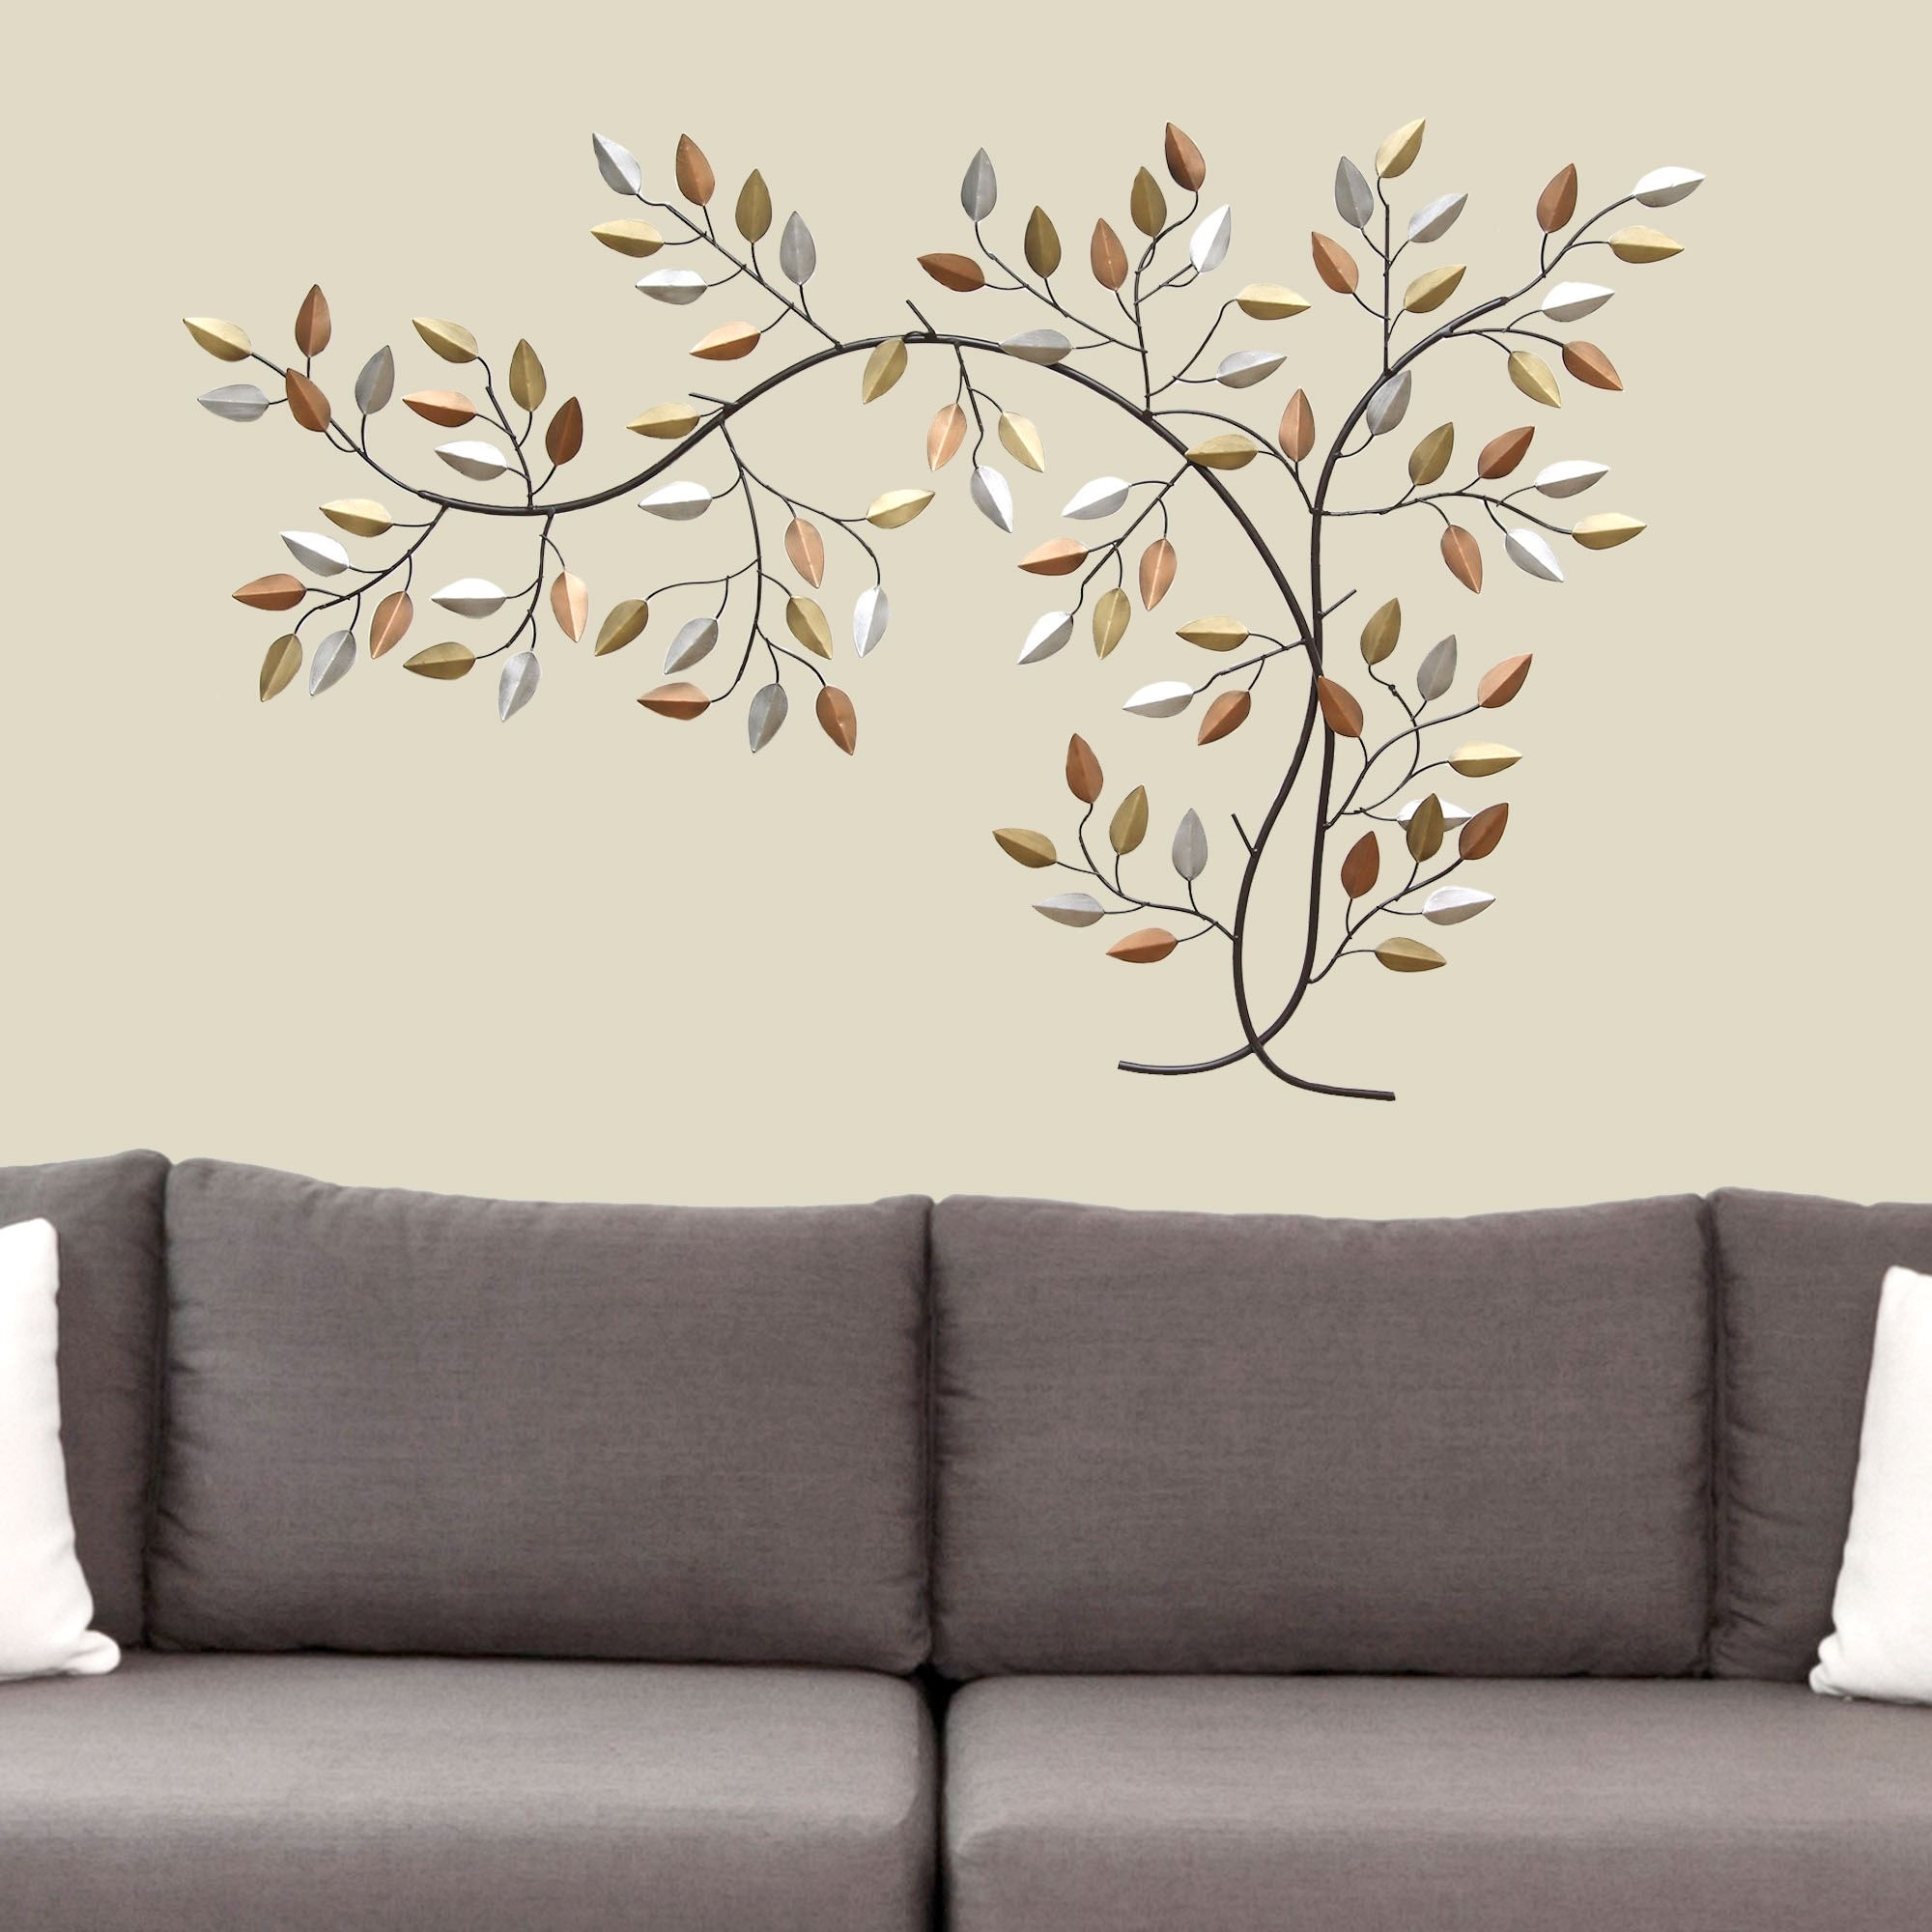 Leaf Branch Metal Wall Art Pertaining To Metallic Wall Art (View 3 of 20)